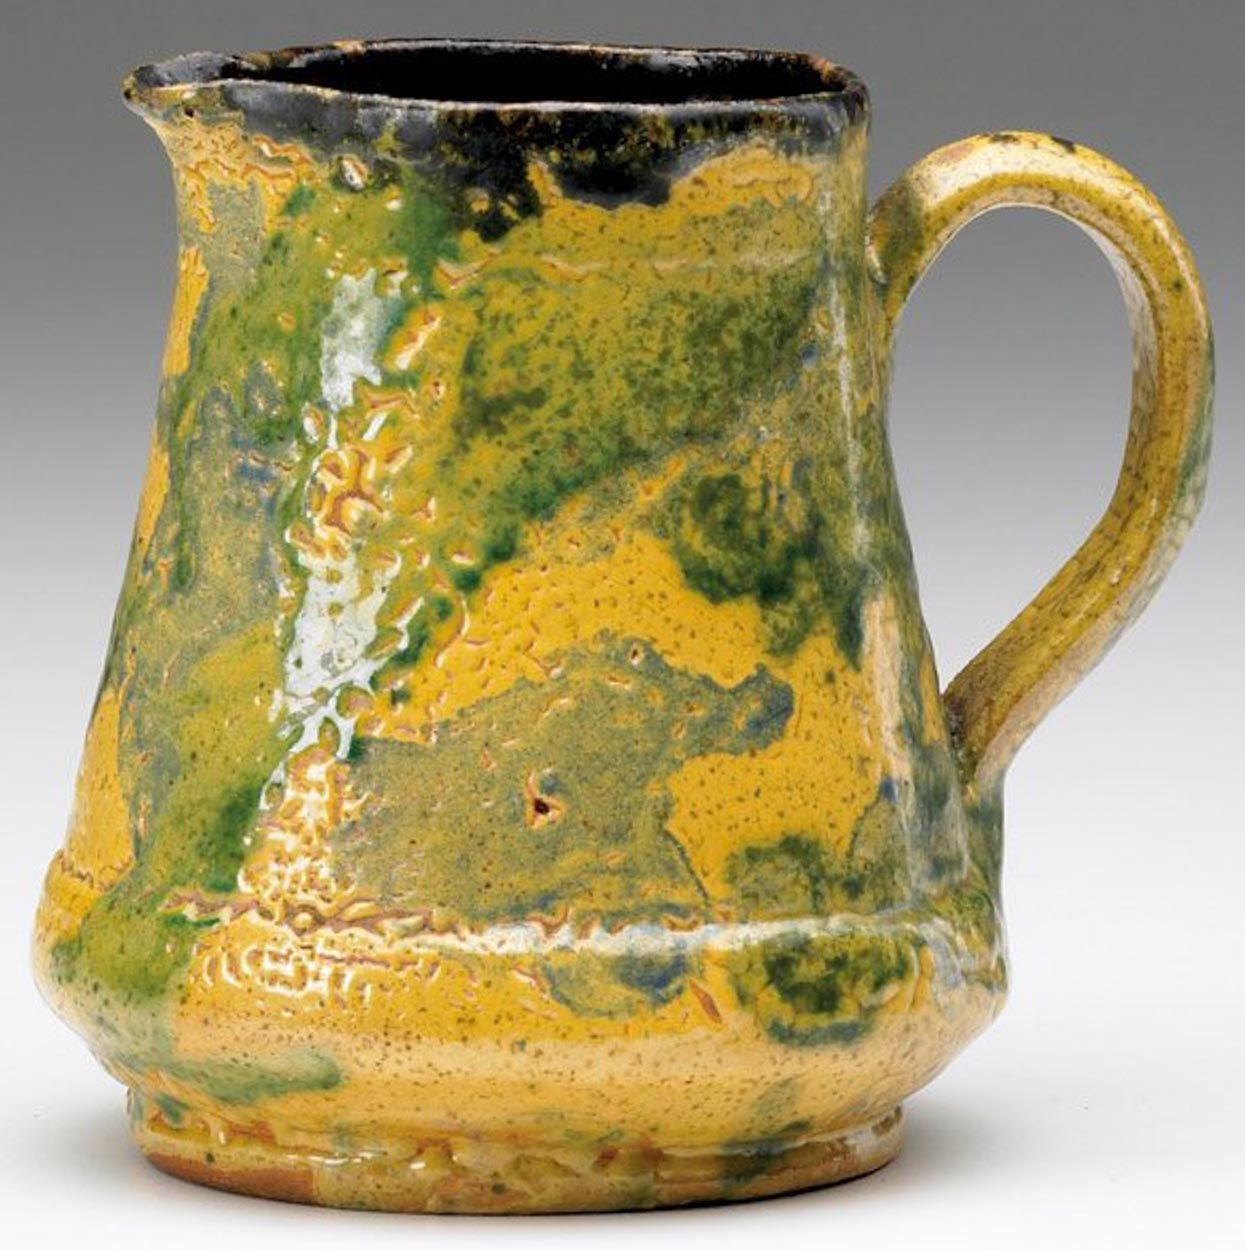 George Ohr Pottery Art American Art Local Artists